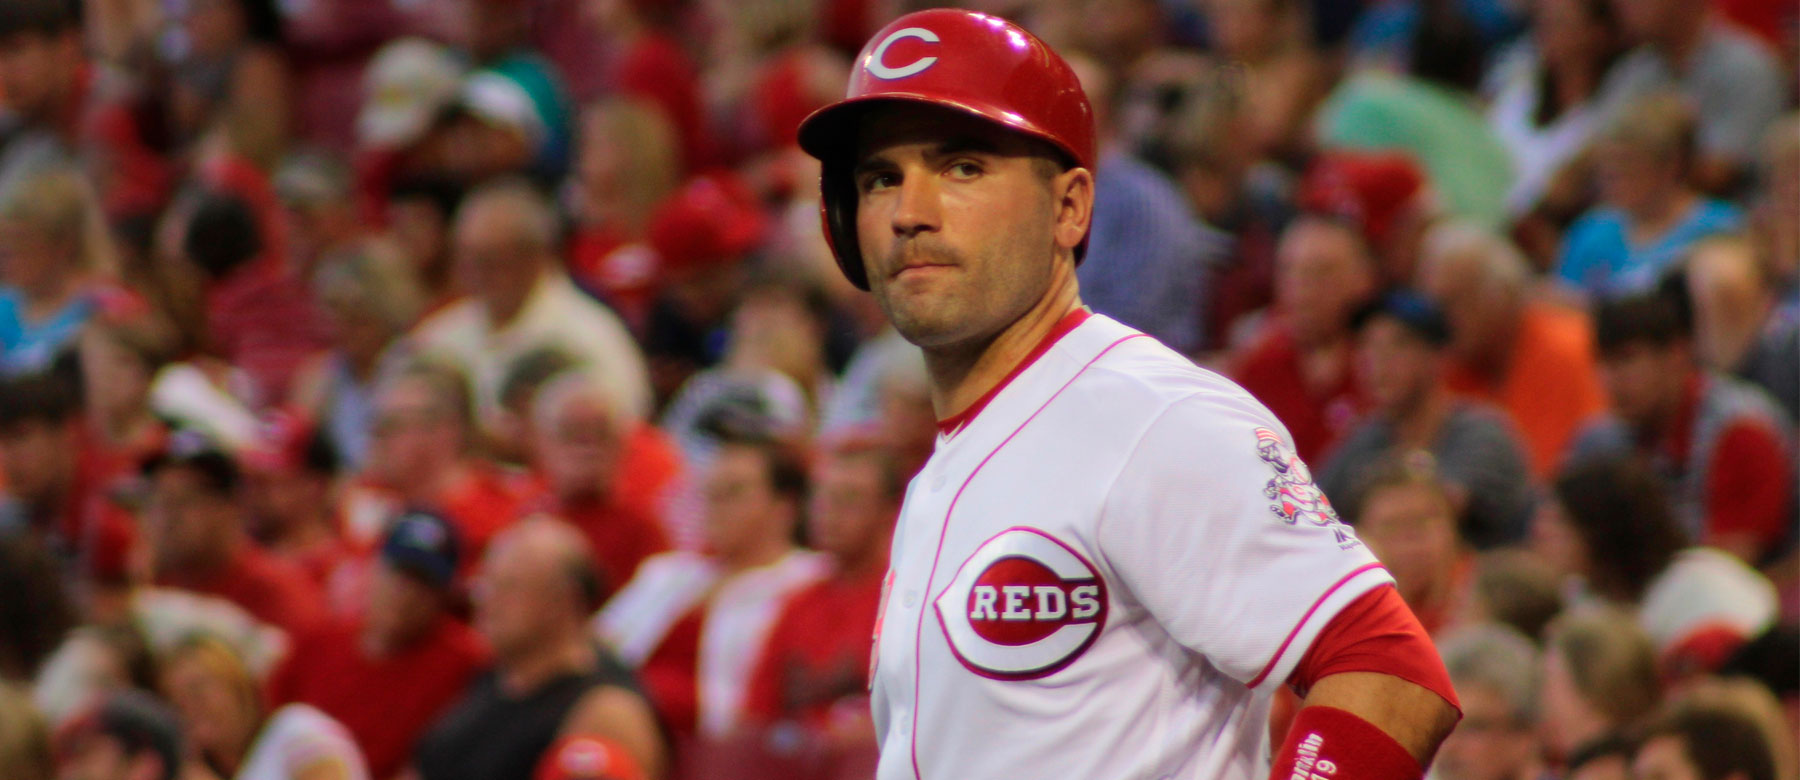 Reds Thoughts for your Weekend: Votto Finishing Strong